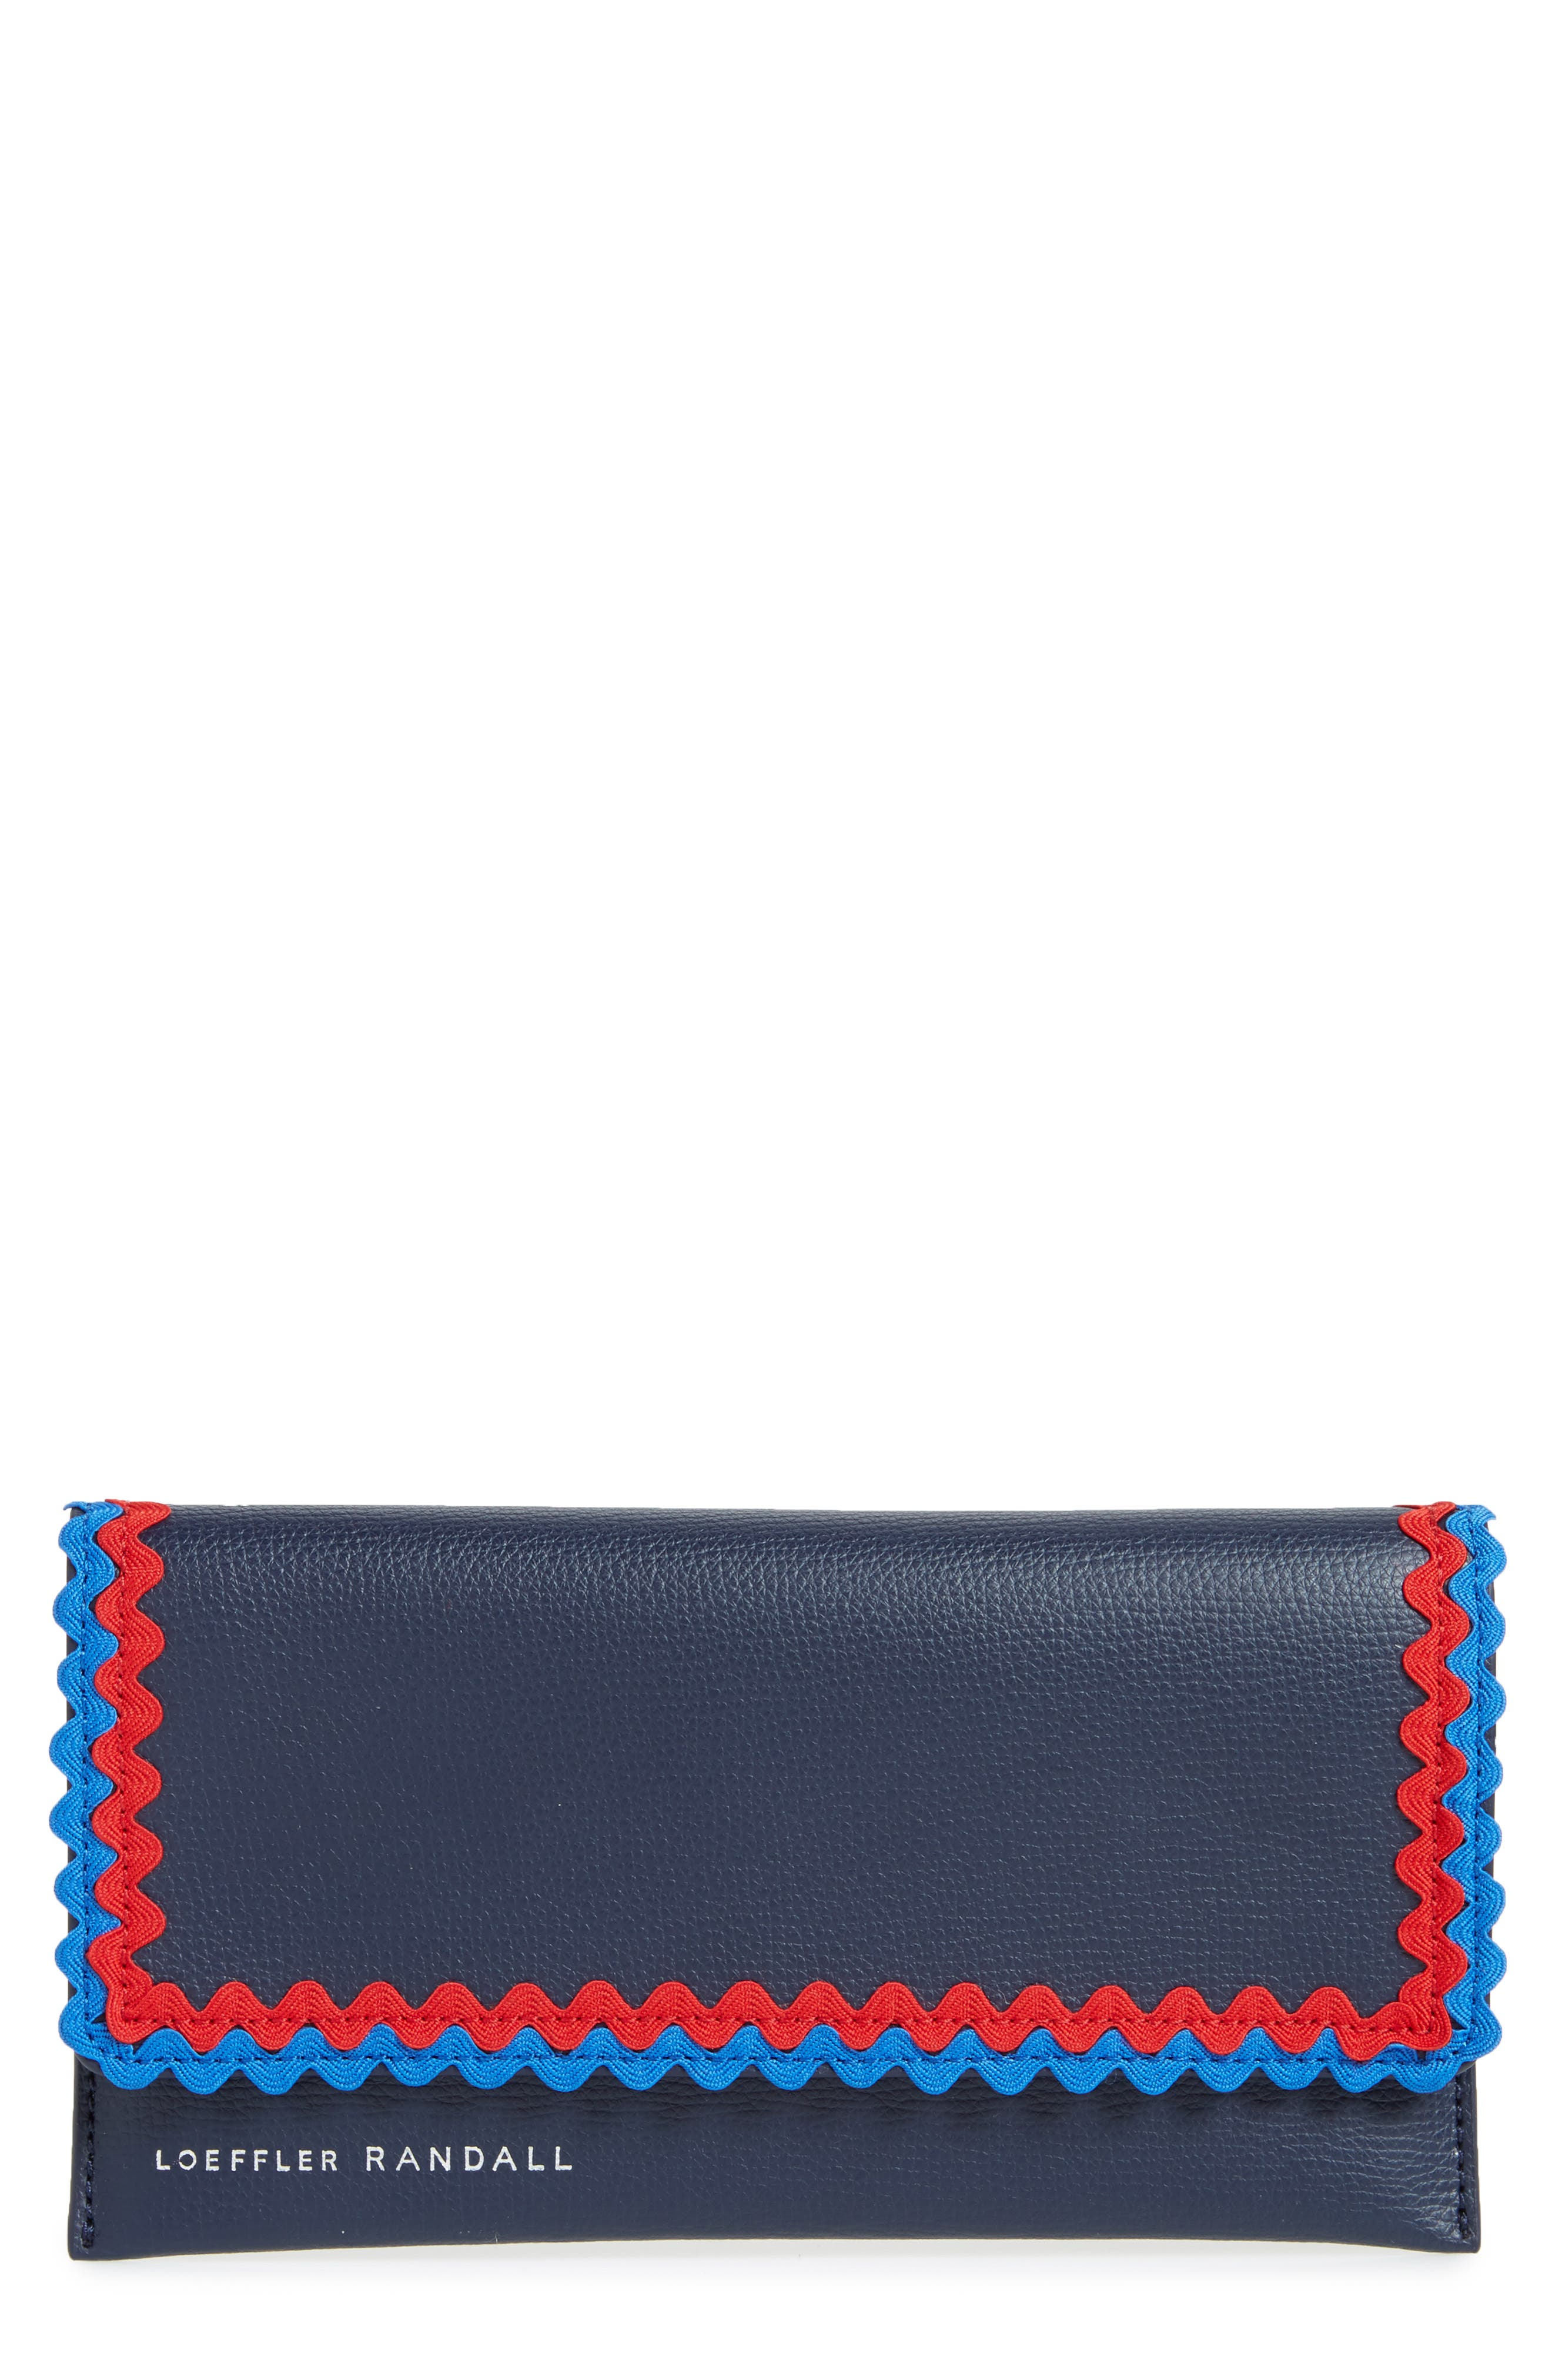 Eveything Embellished Leather Wallet,                             Main thumbnail 1, color,